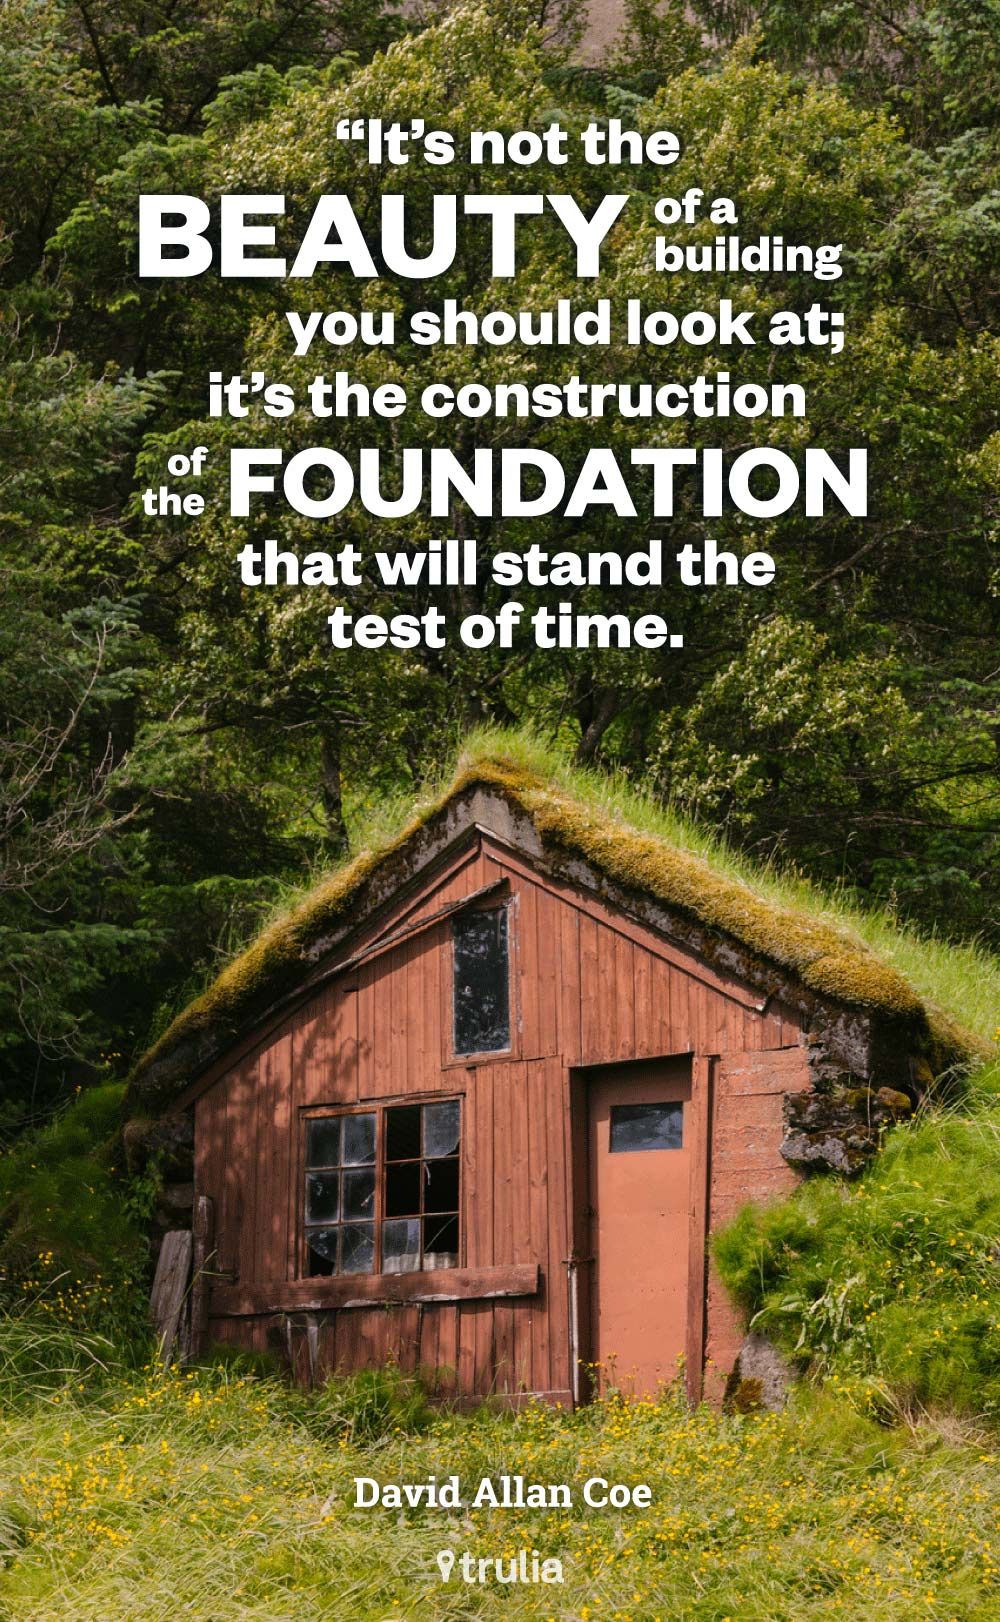 Quotes To Survive The Home Search Trulias Blog Real Estate - Happy new home quotes